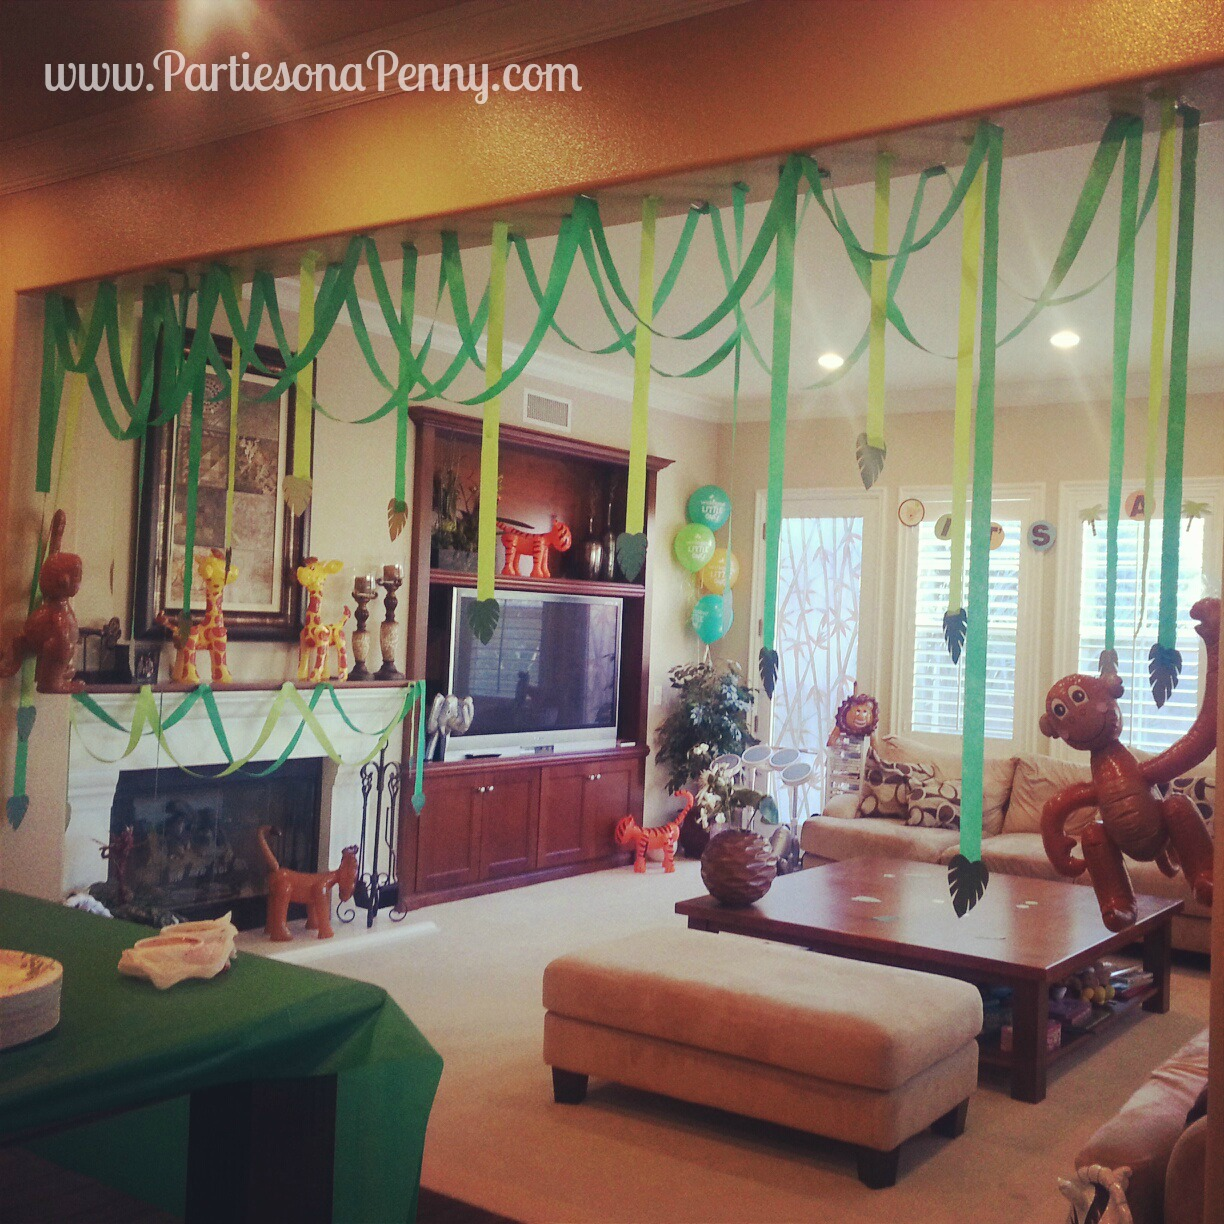 Parties on a penny my parties for Baby shower jungle theme decoration ideas